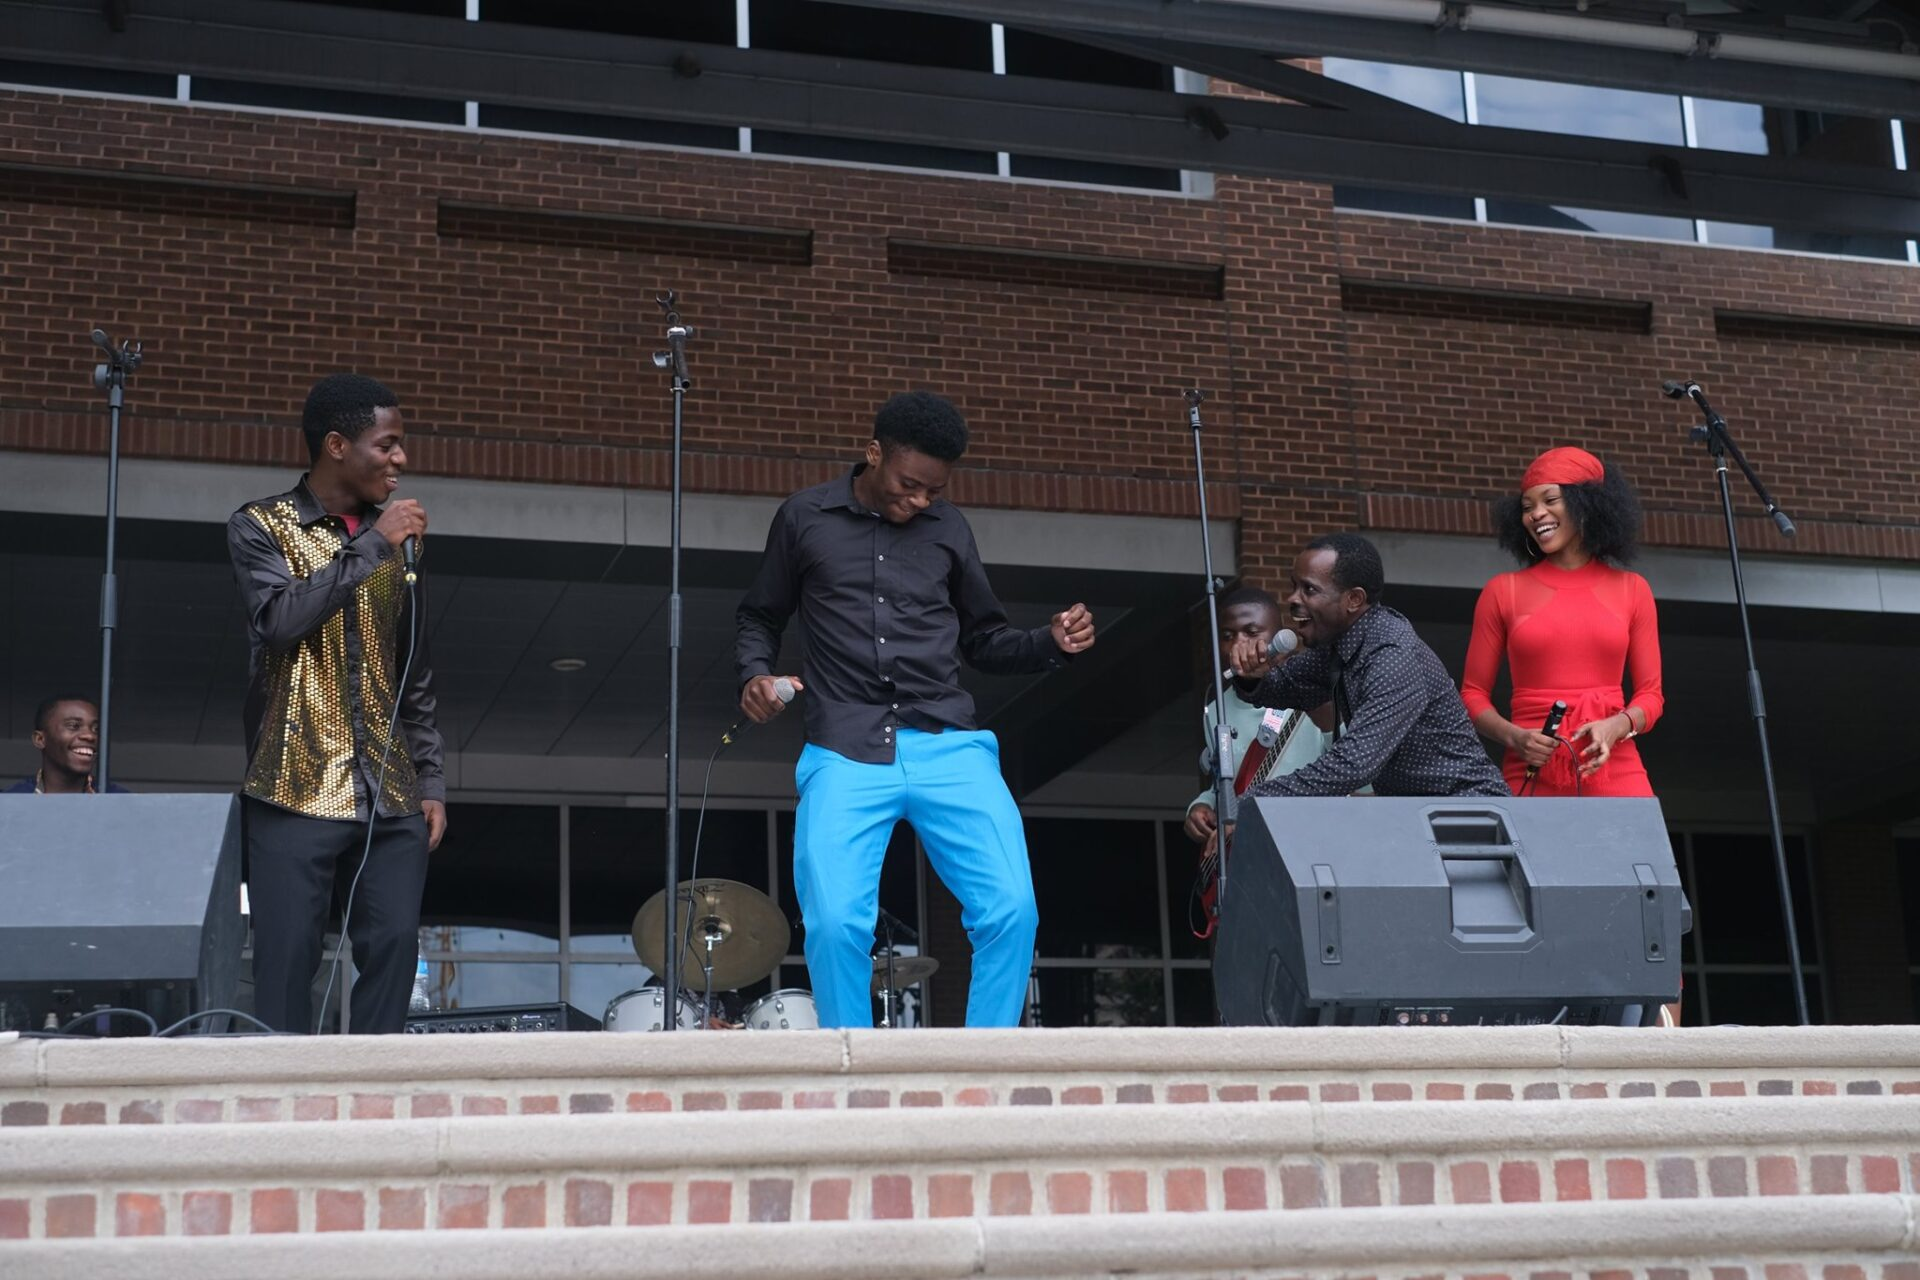 Joel Makeci (crouching, second from right) and NGGBC, the musical act during Music For Everyone's Music Friday in honor of World Refugee Day on June 23. (Source: Church World Service)